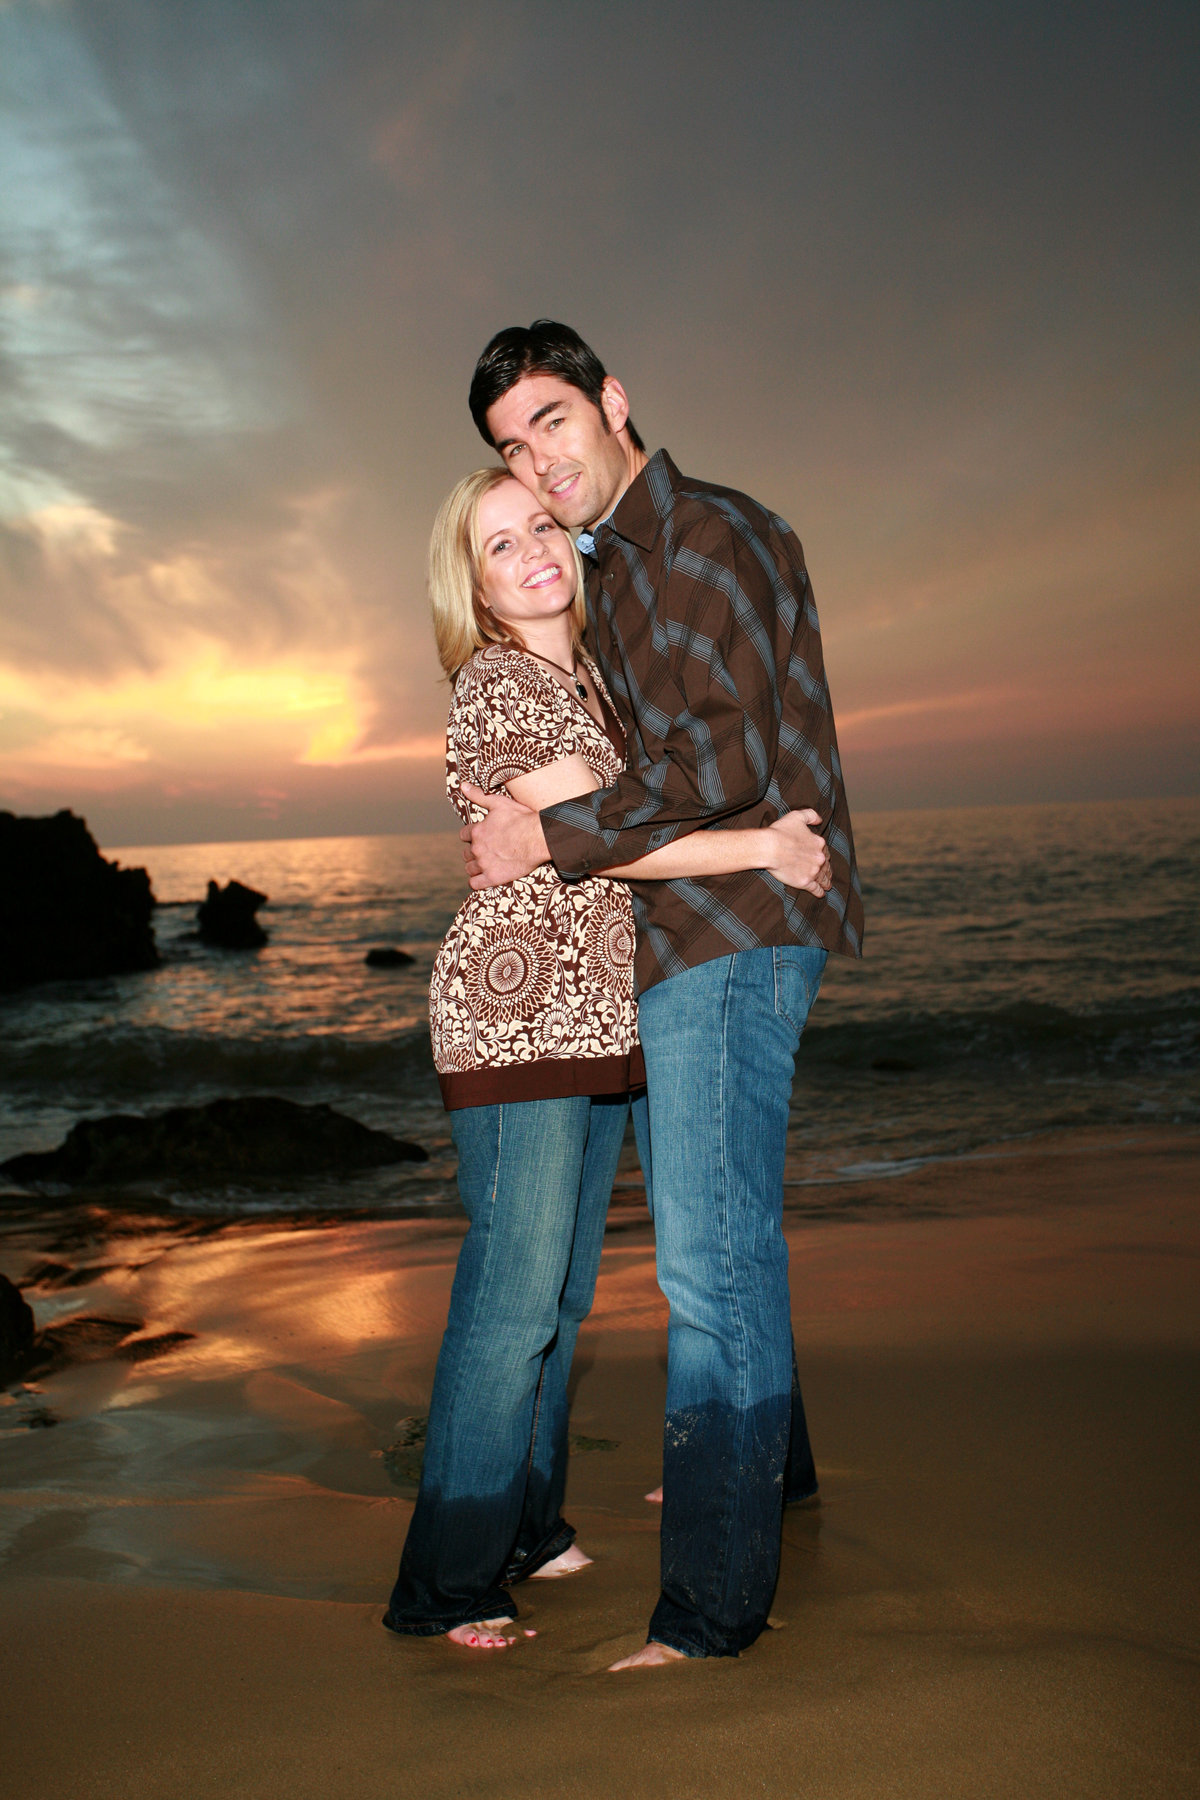 Kassel will capture your engagement shoot in studio or location. Lets go to the beach!